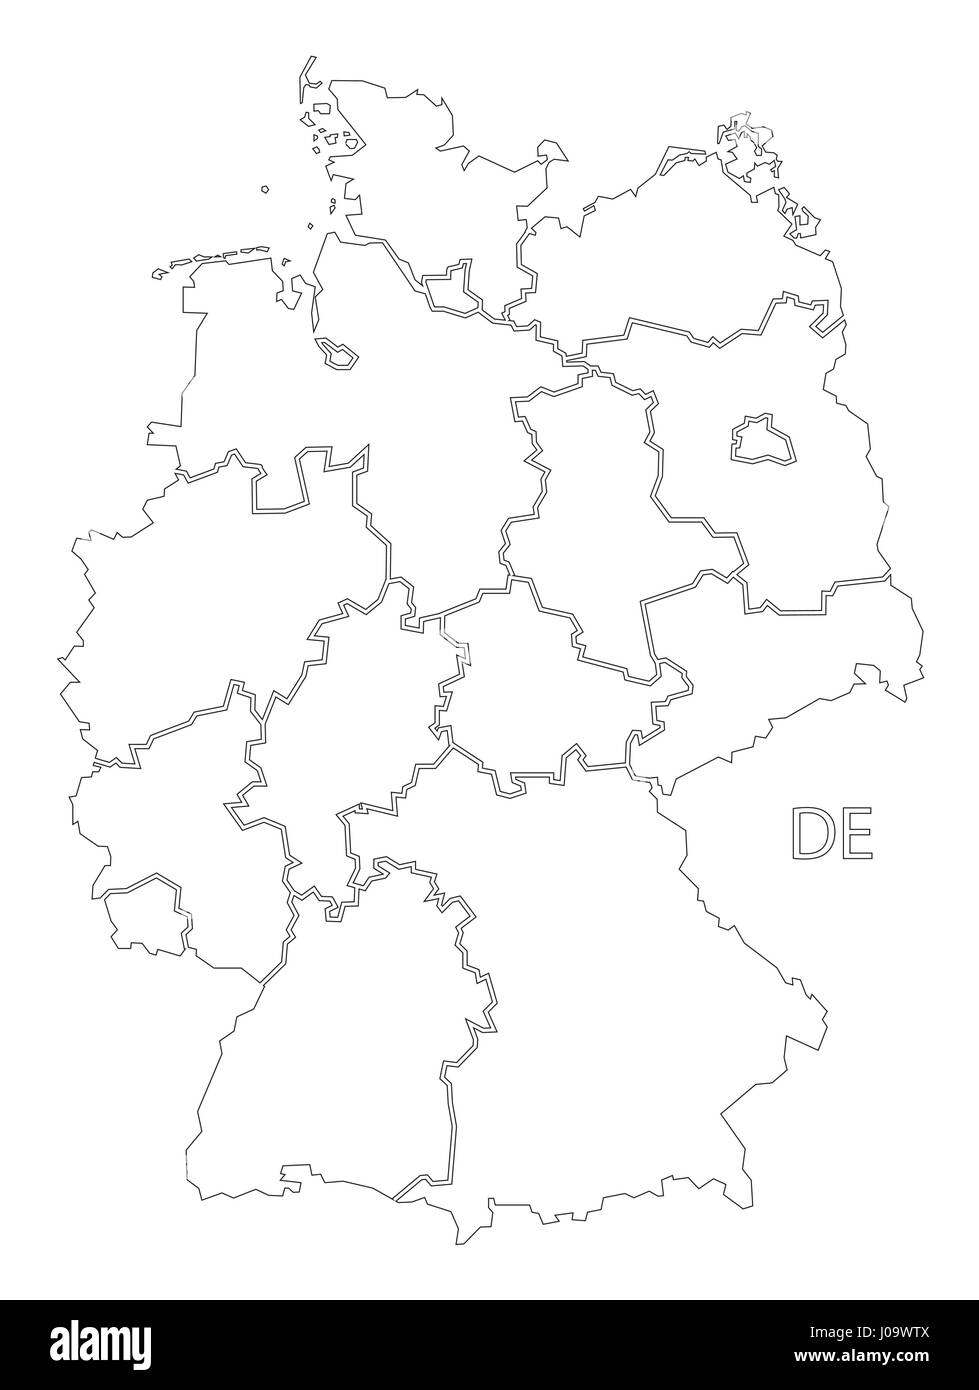 Germany Outline Silhouette Map Illustration With Federal States - Outline map of germany with states